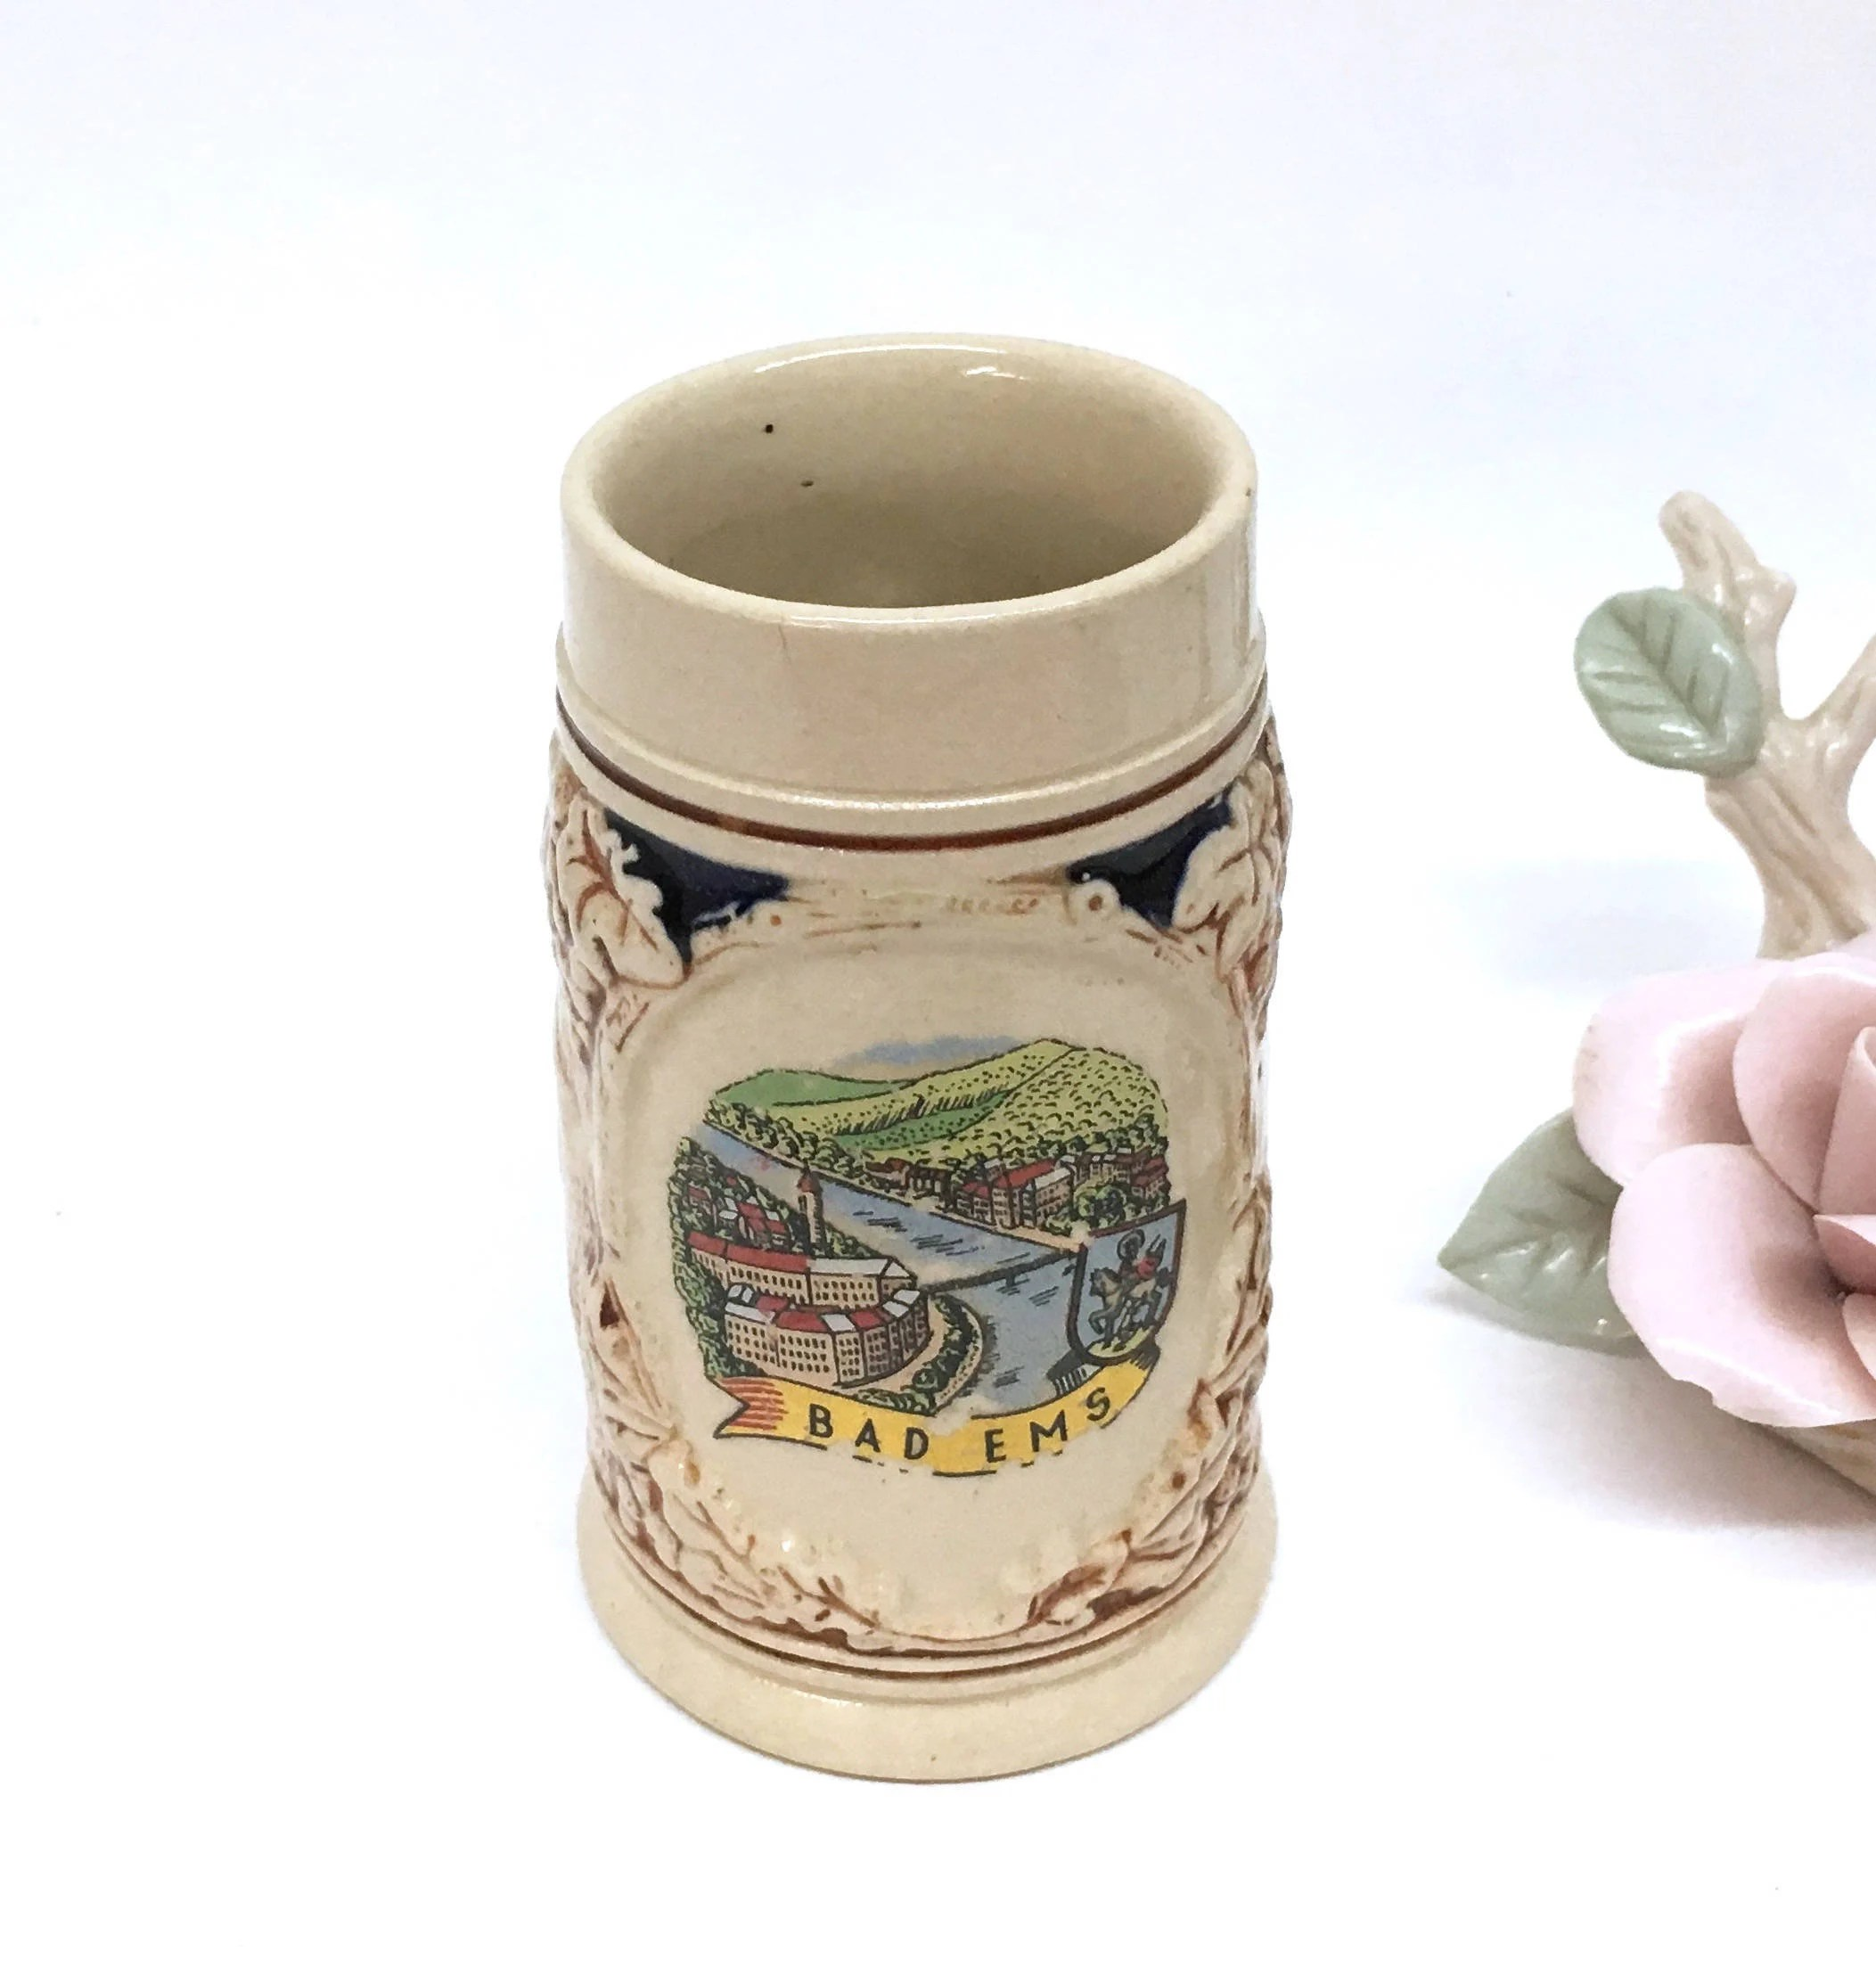 Bad Stein German Beer Stein Is A Collectible 4 1 8